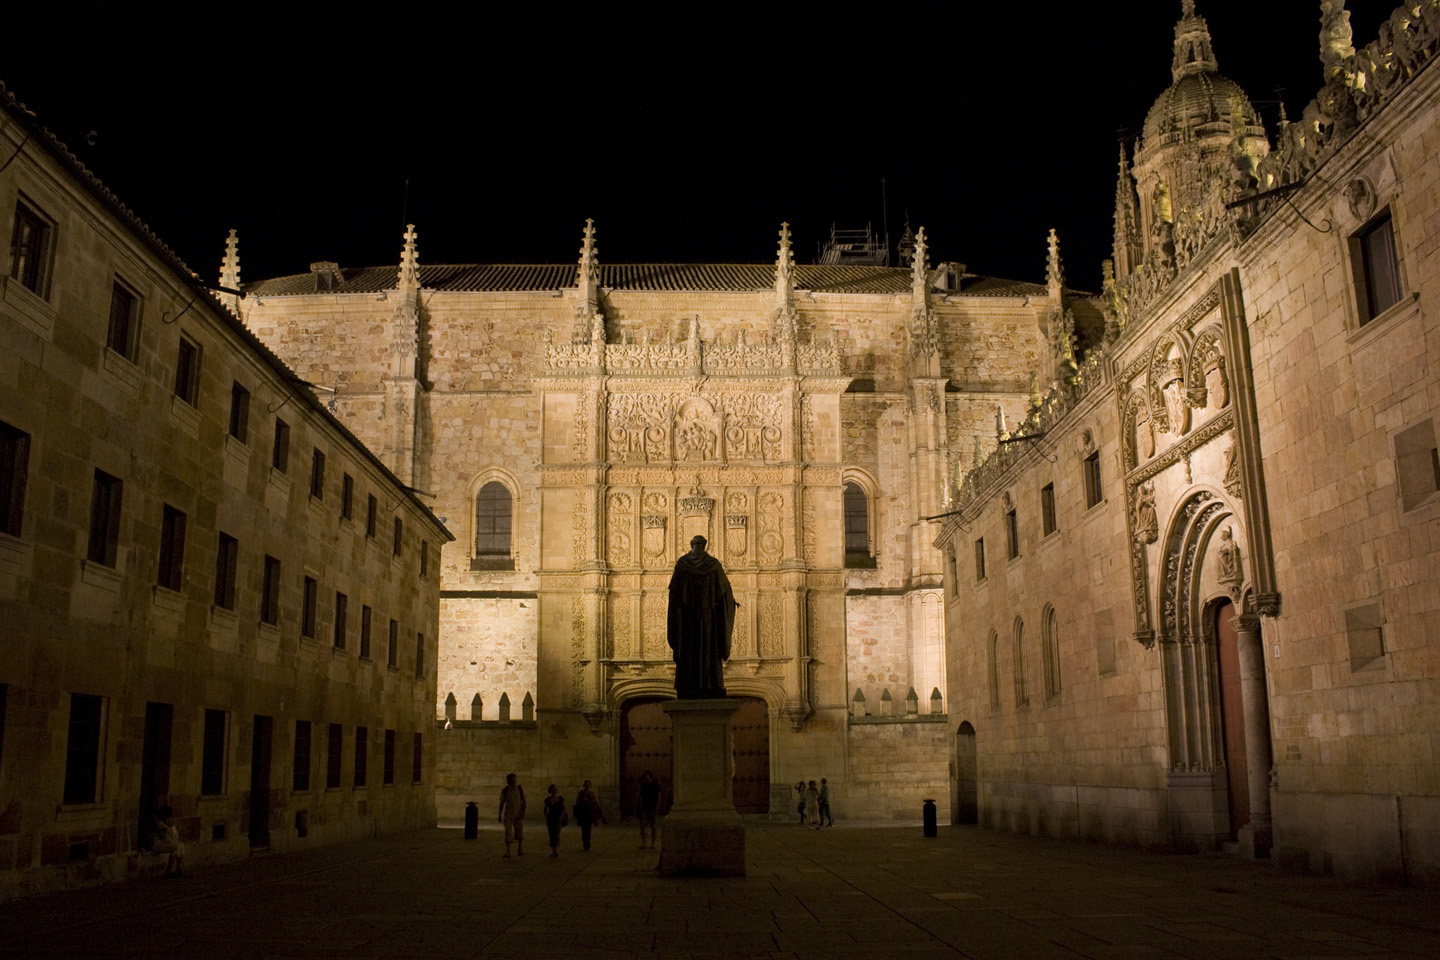 Founded in 1134. Received its university charter from Pope Alexander IV in 1255.